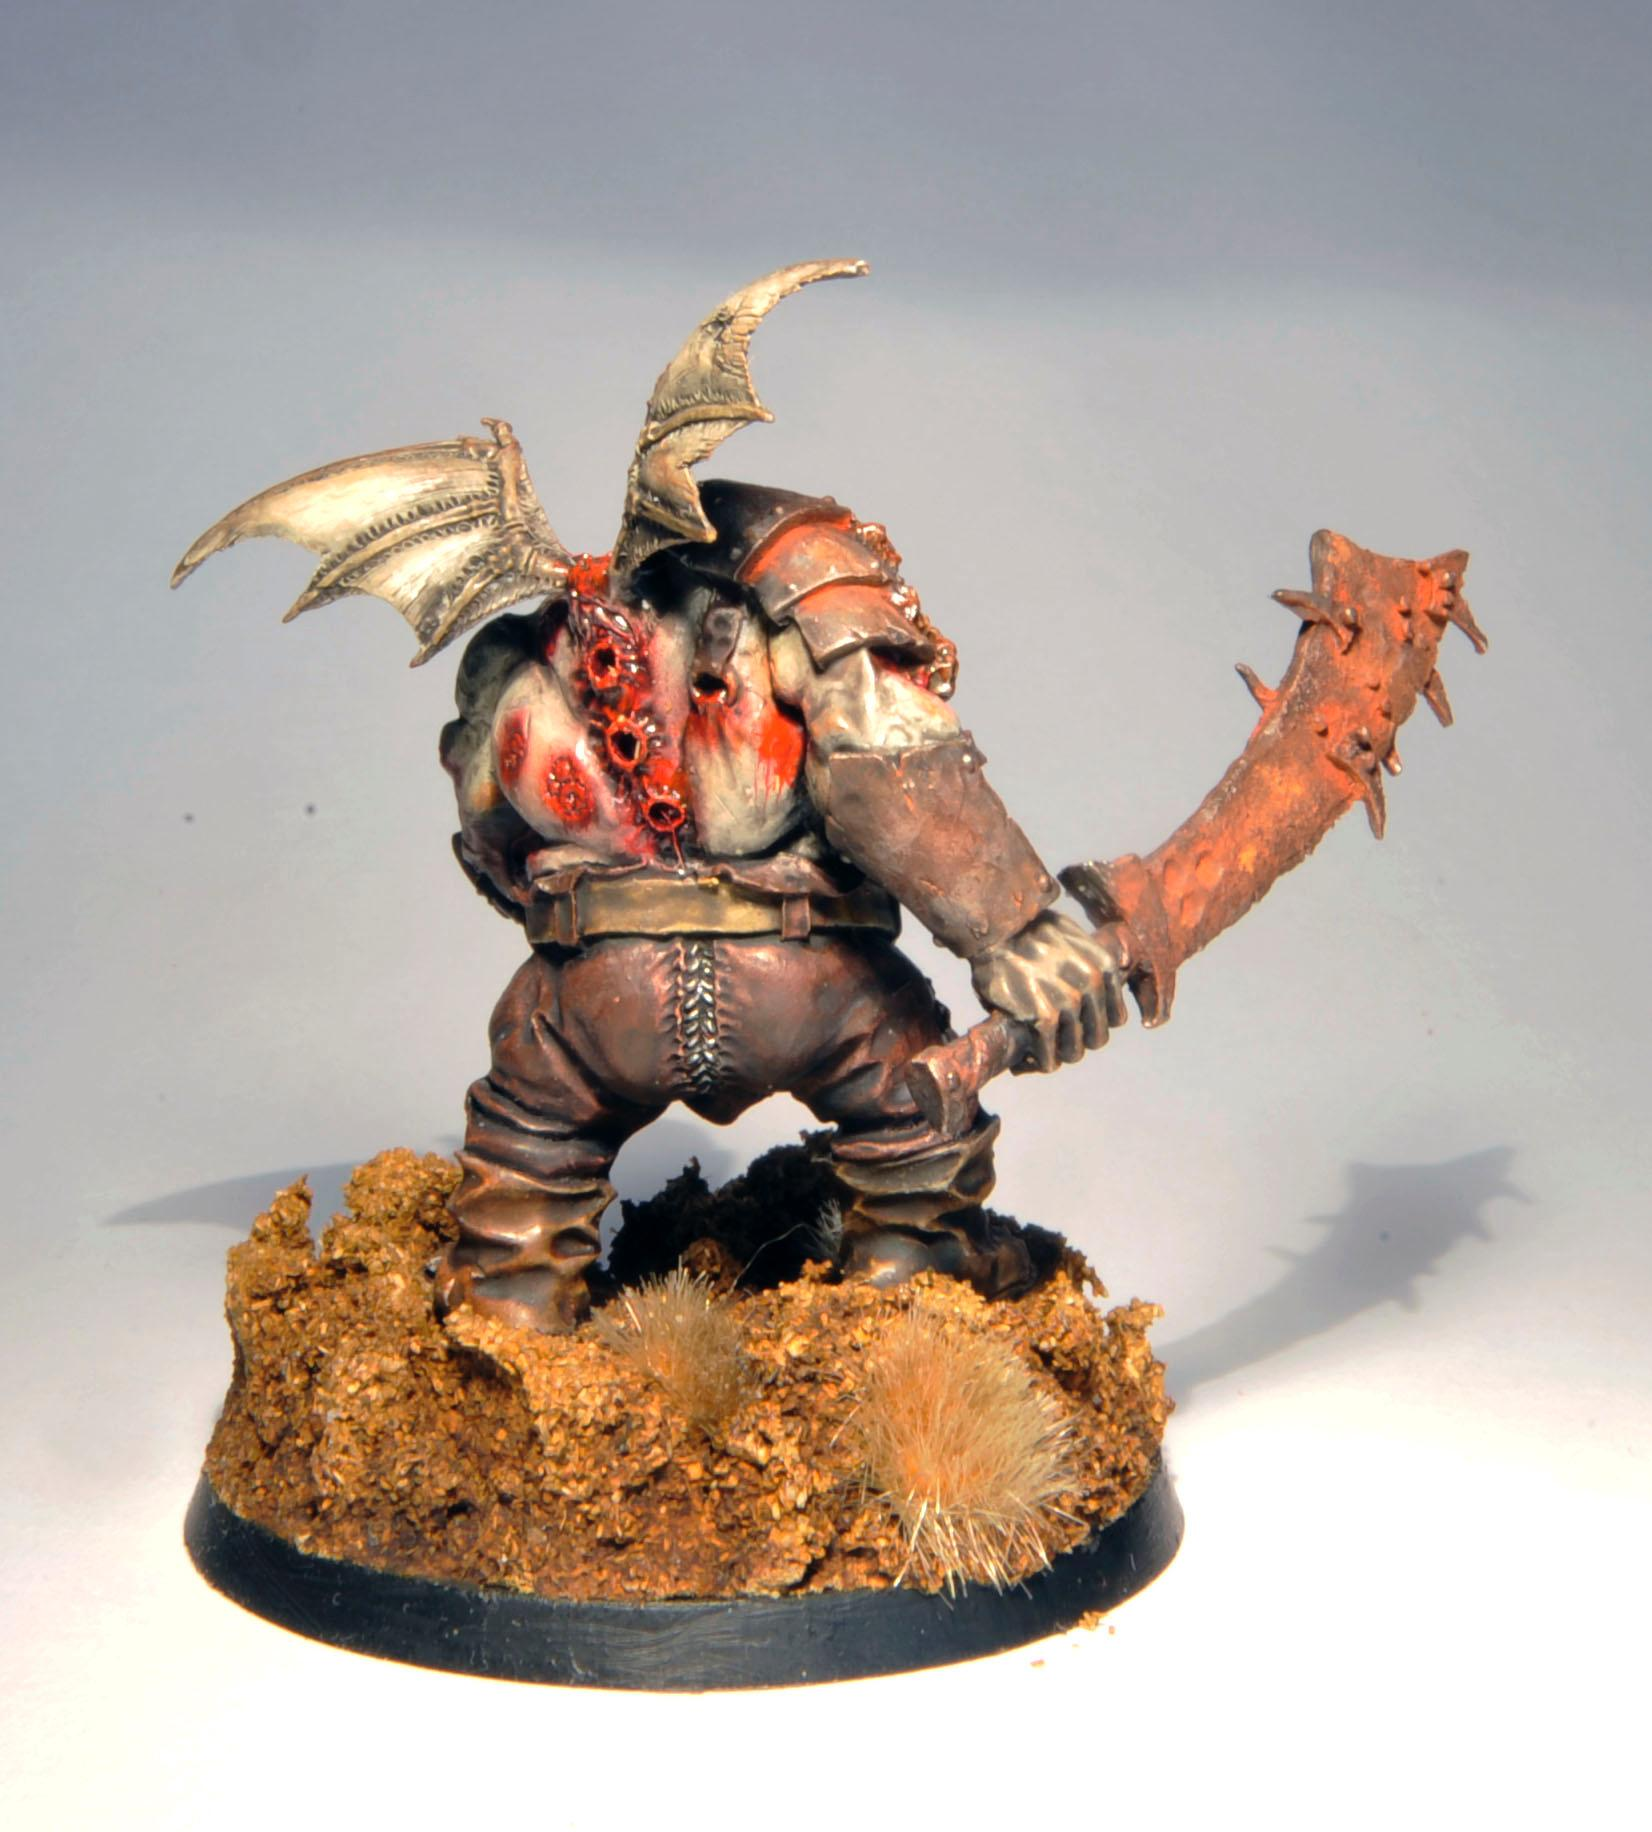 Chaos, Daemons, Forge World, Nurgle, Ogres, Plague, Prince, Rusty, Winged